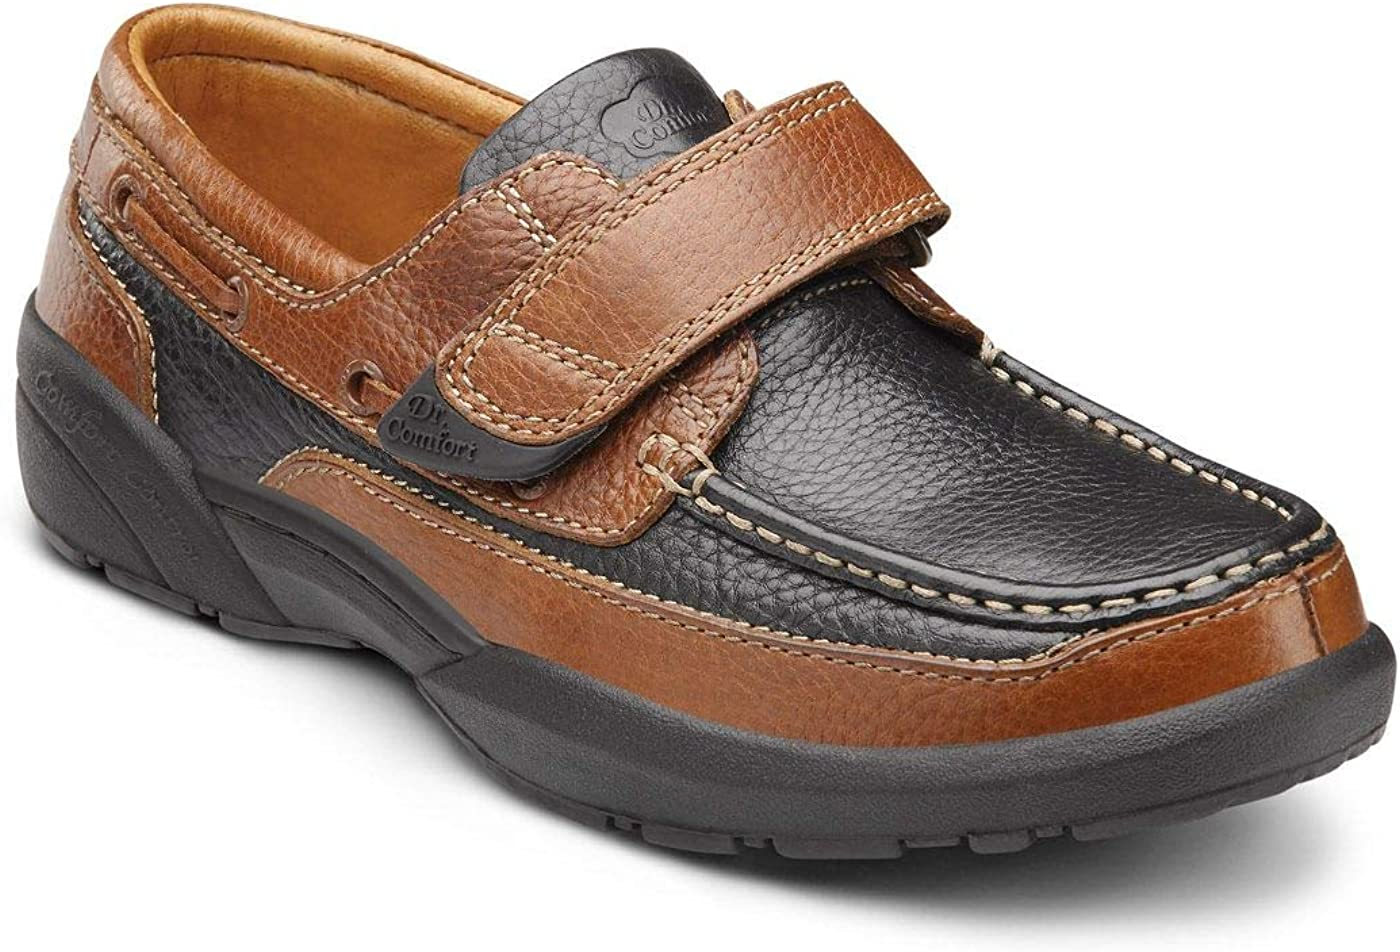 Dr. Max 52% OFF Comfort Mike Men's Max 60% OFF Therapeutic Extra Diabetic Ch Depth Shoe: